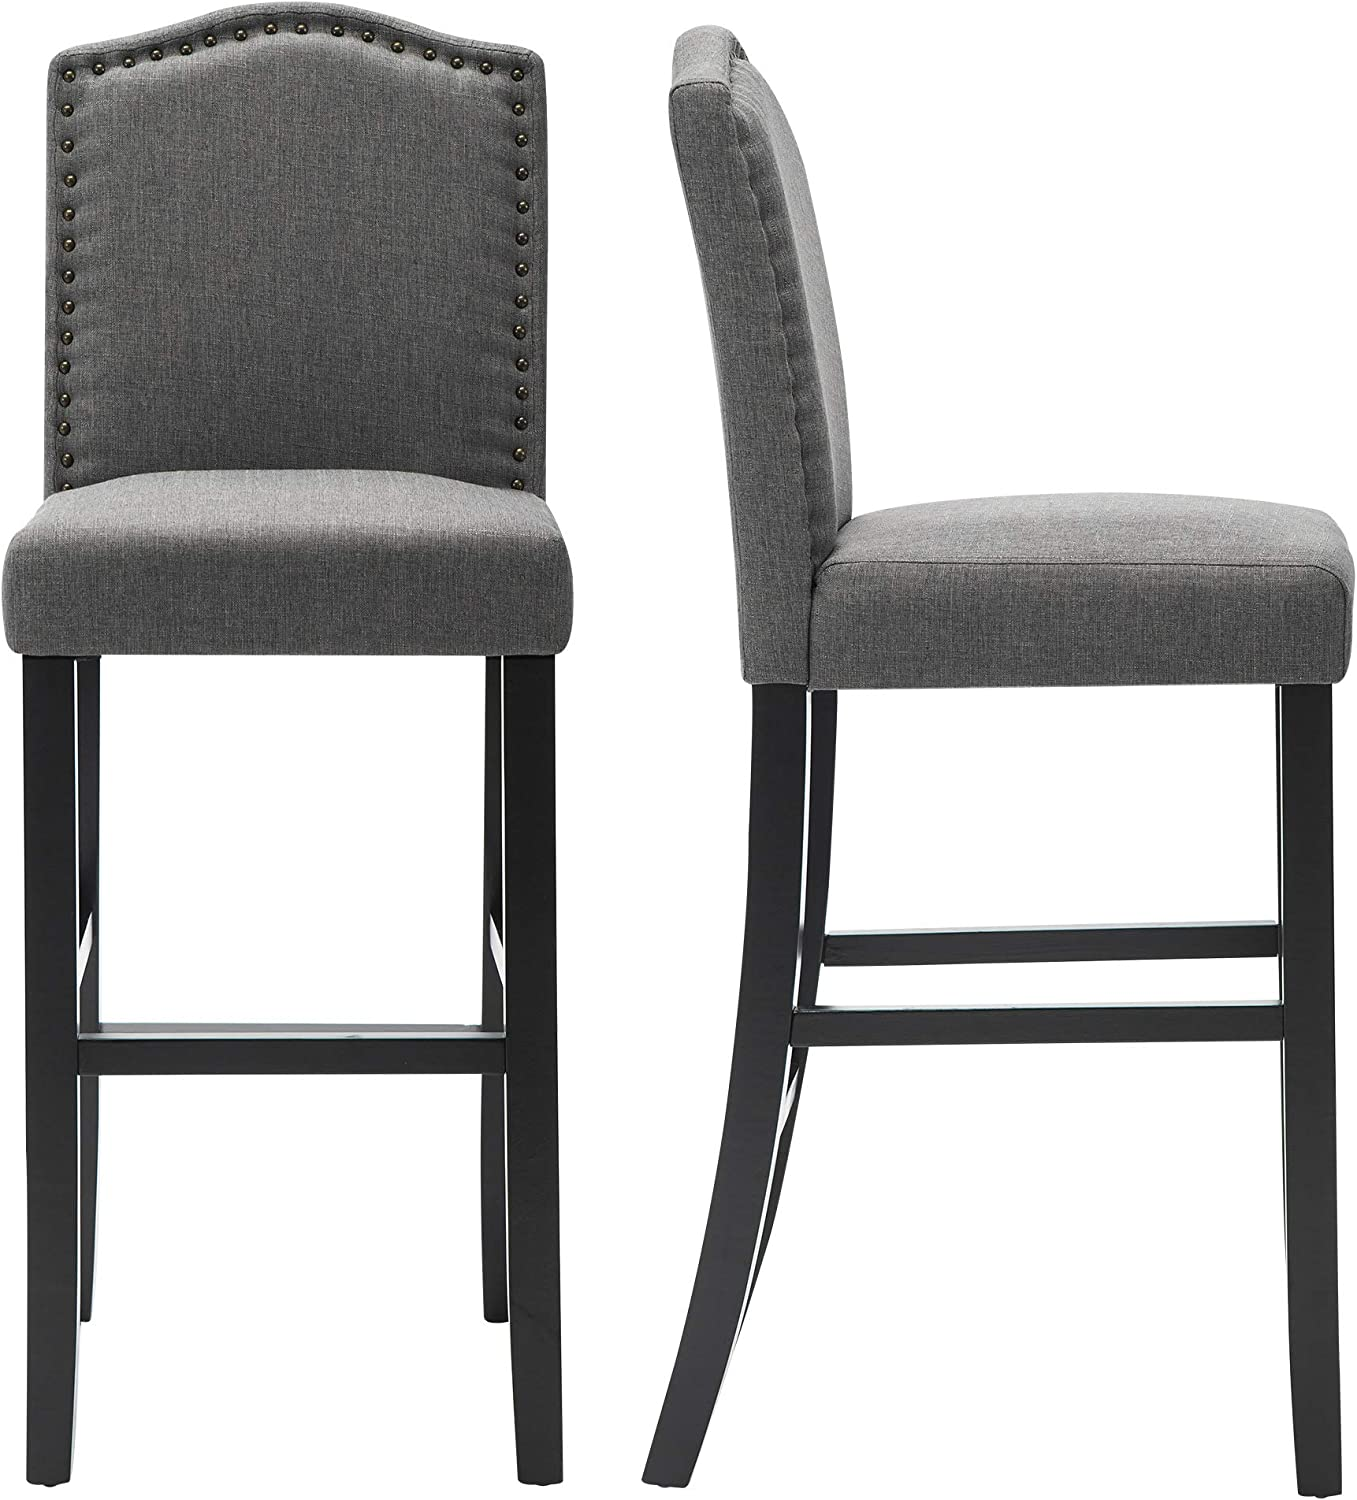 LSSBOUGHT Nailhead Barstools with Solid At the price Wood Set Gre Legs of 2021 autumn and winter new 2